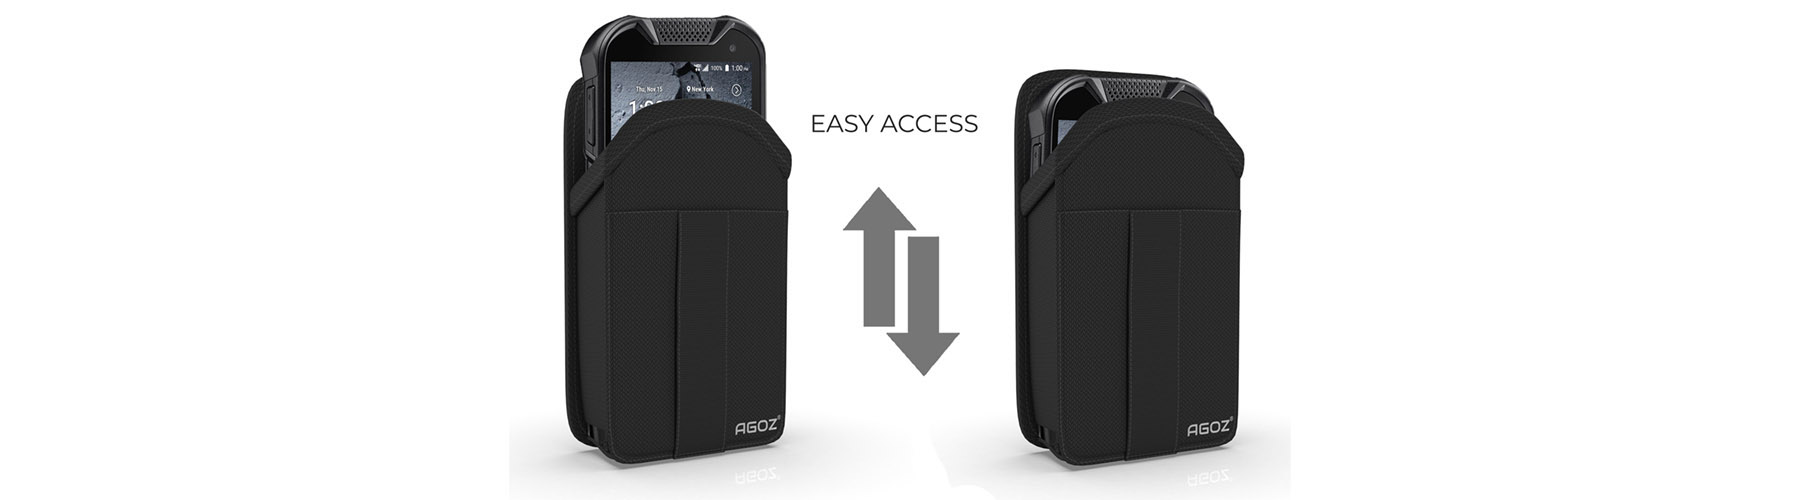 Kyocera Case with Credit Card Slot